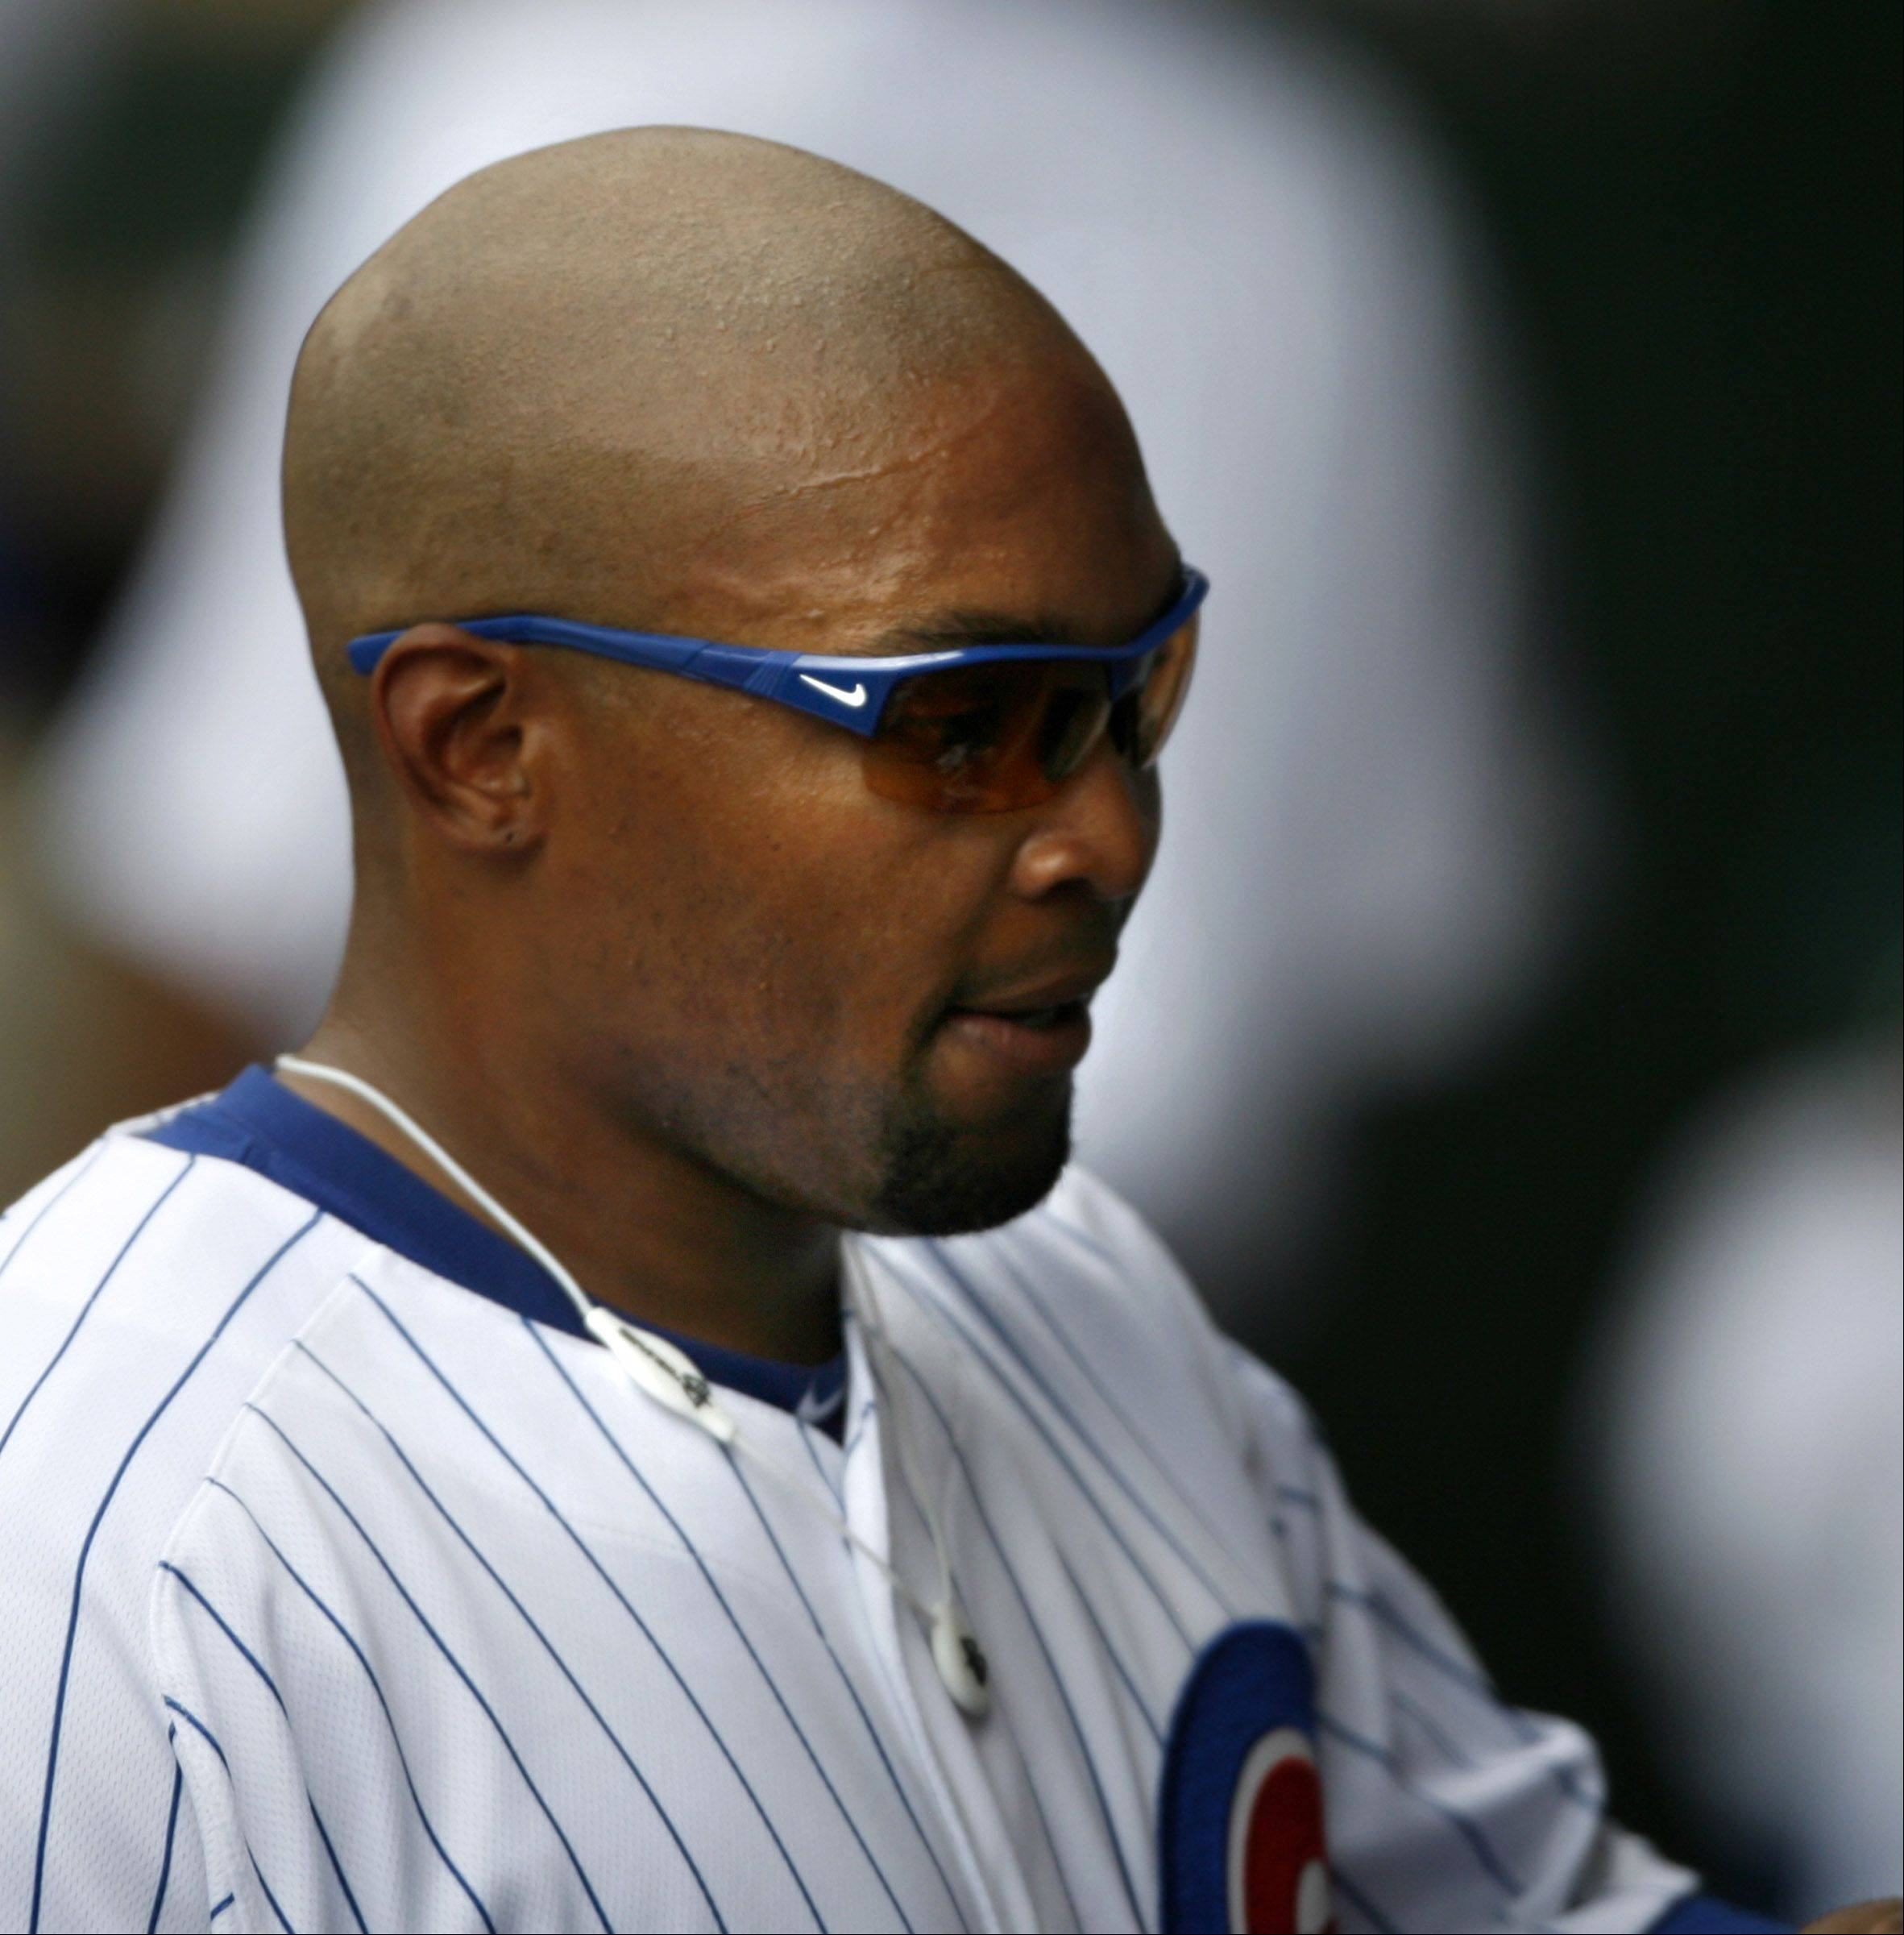 Cubs center fielder Marlon Byrd in the dugout during game with the White Sox at Wrigley Field on Saturday.